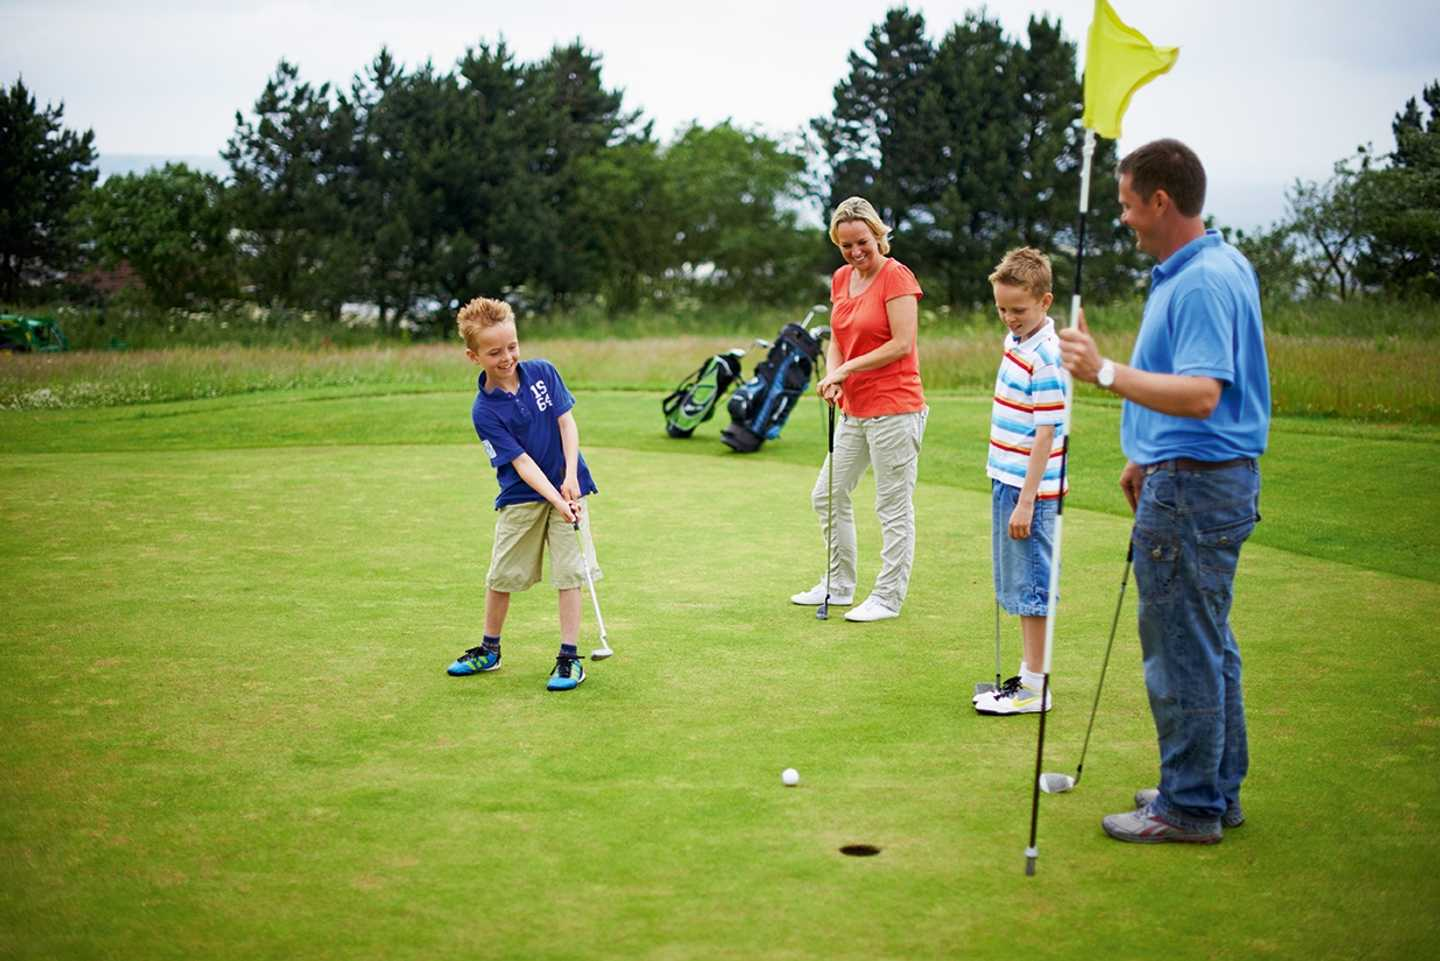 Family playing on the 9-hole golf course at Reighton Sands